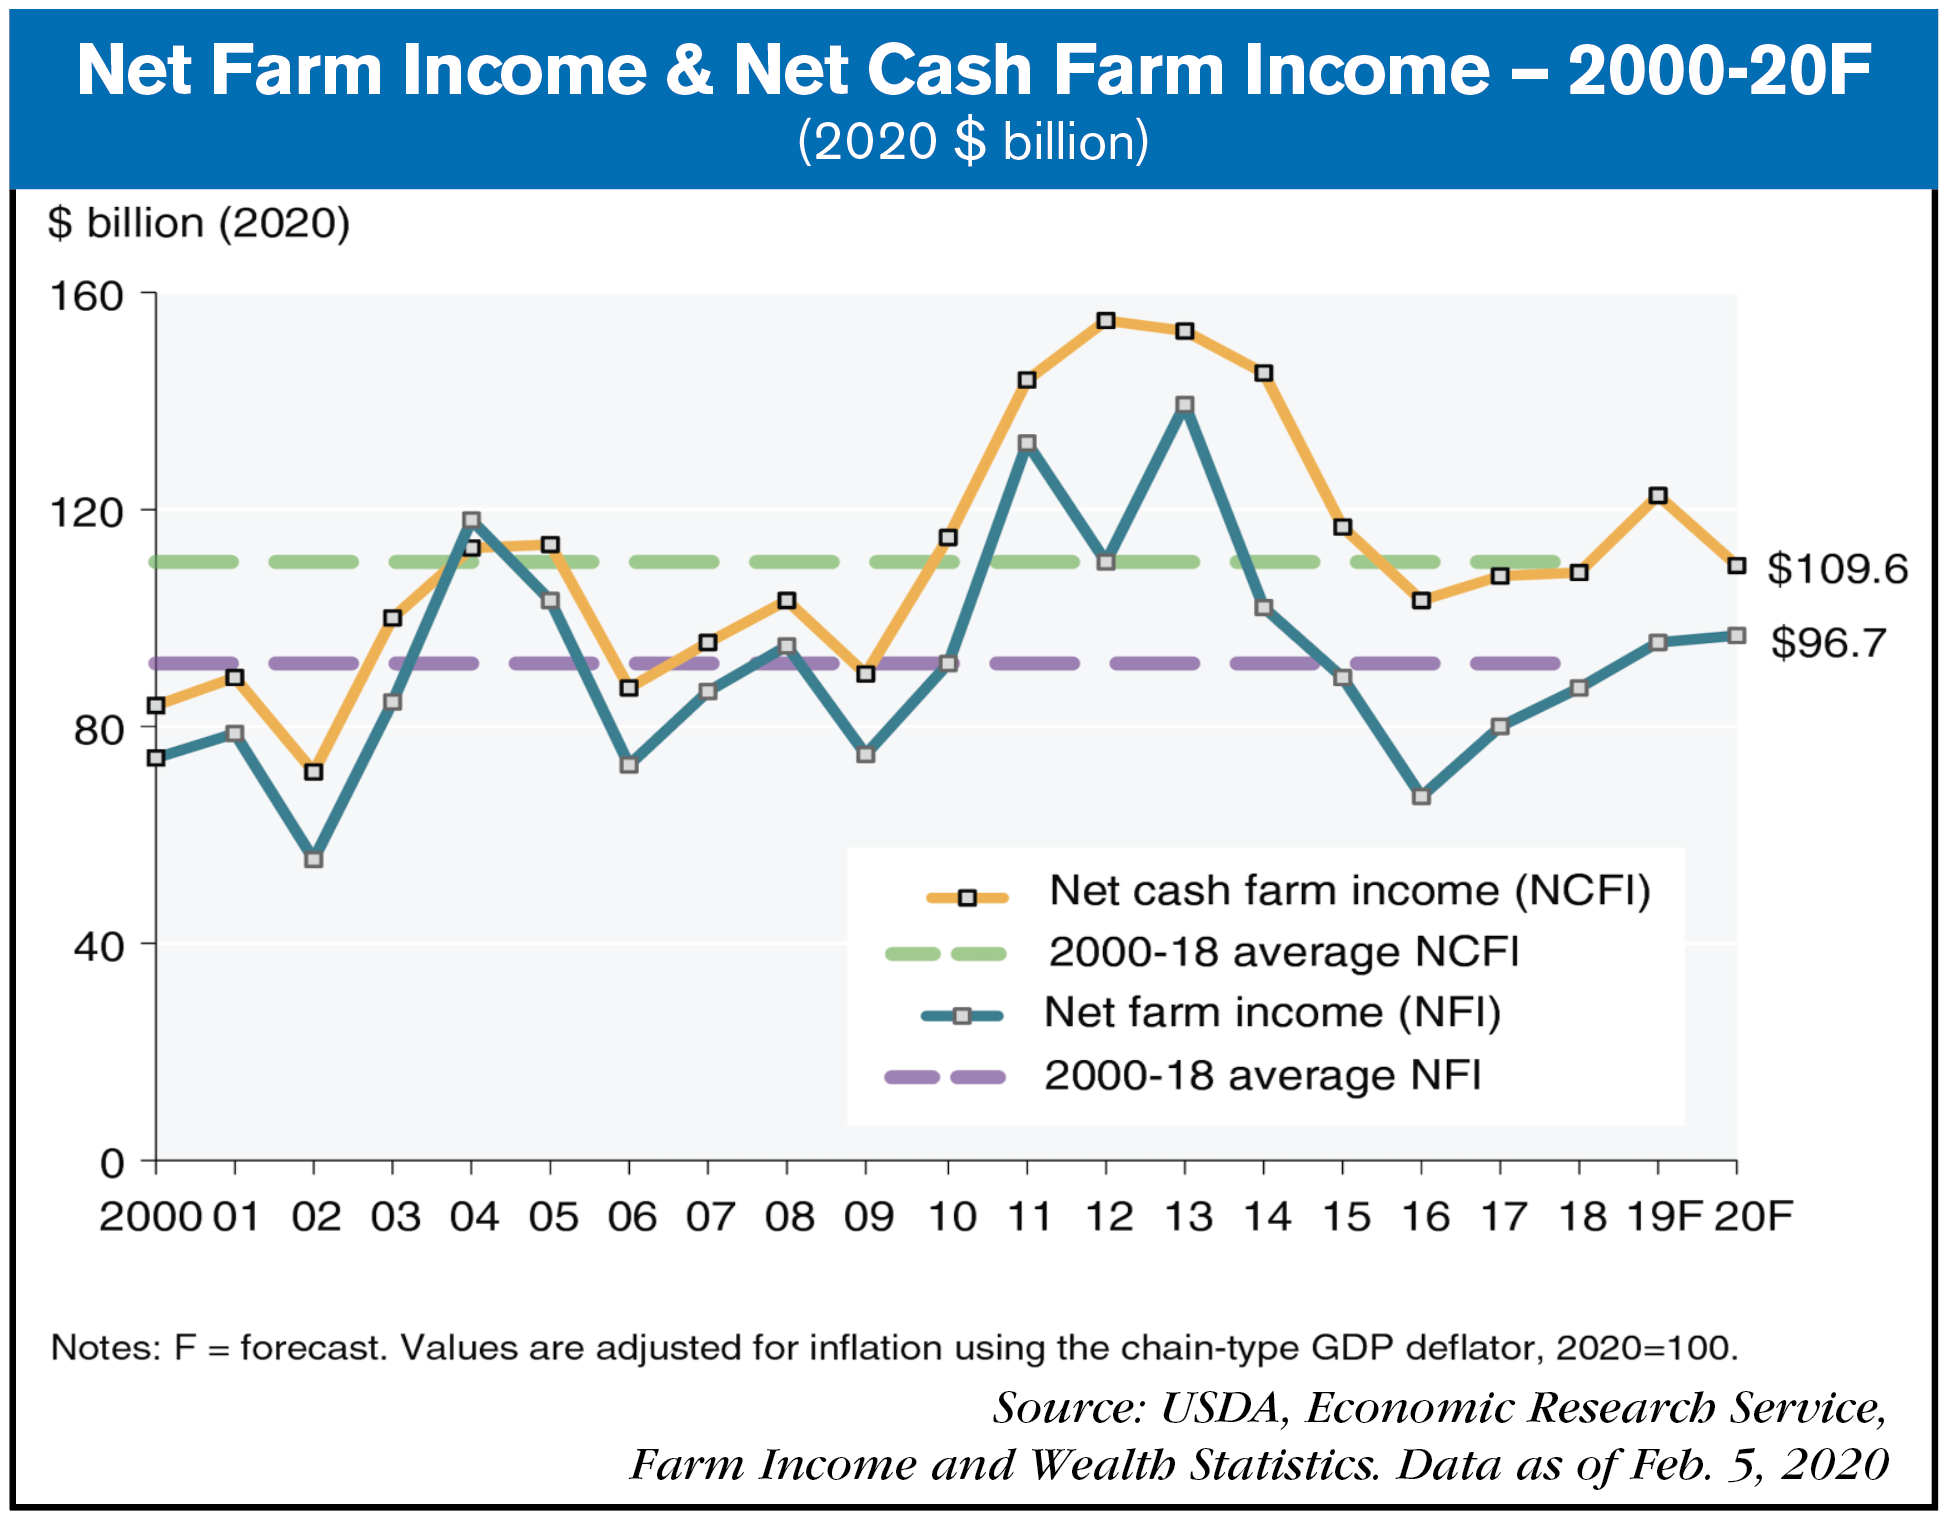 2020 net farm income